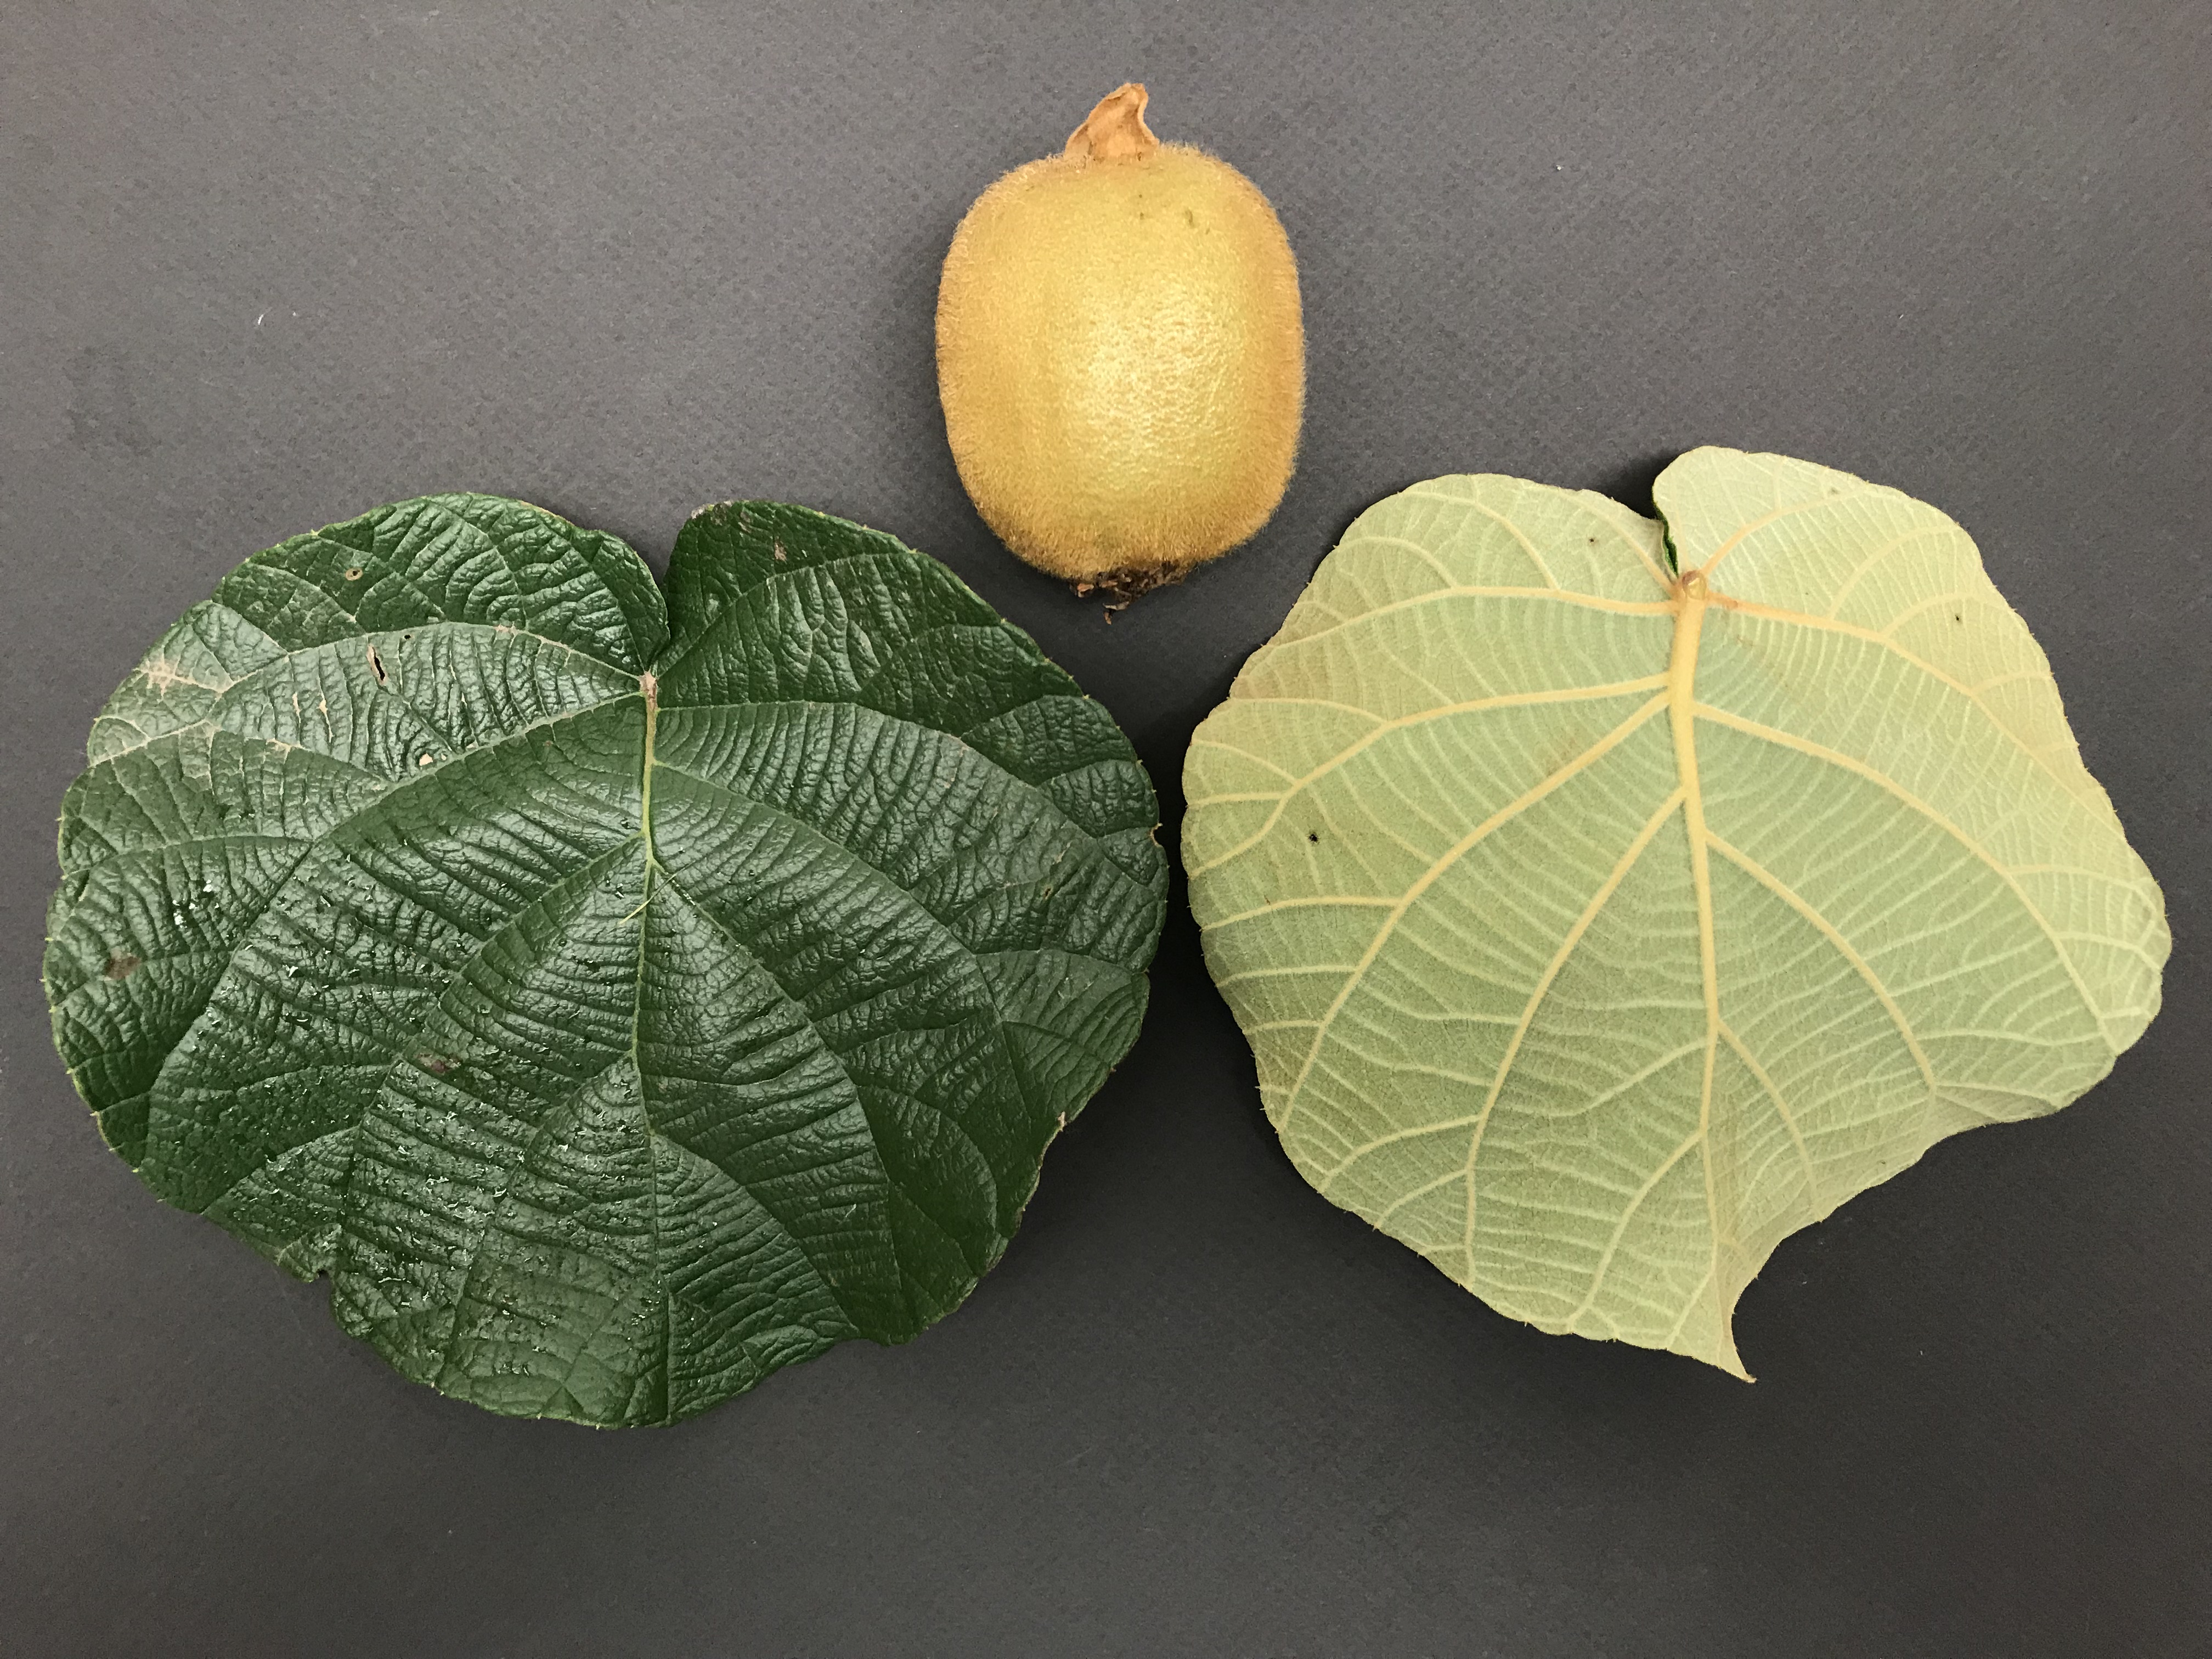 top and bottom views of leaves and fuzzy kiwi